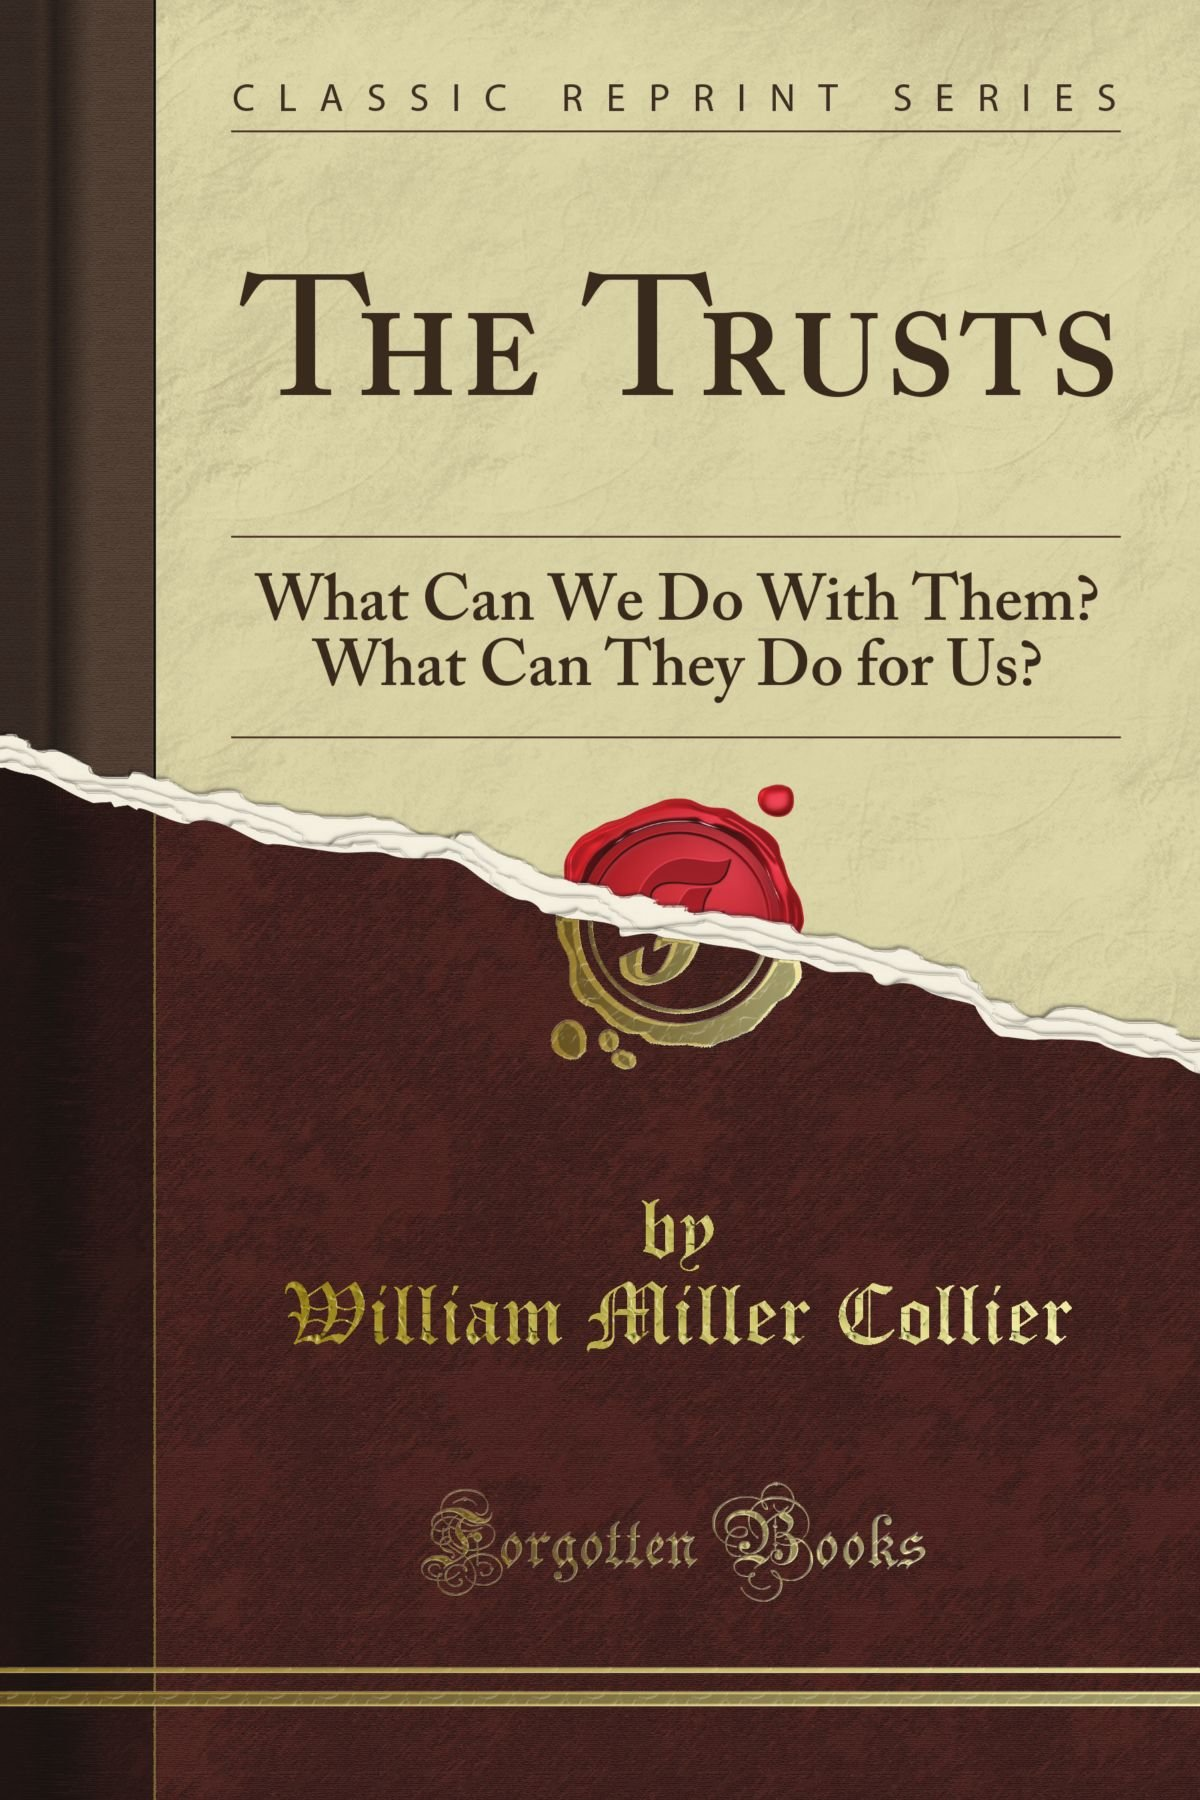 The Trusts: What Can We Do With Them? What Can They Do for Us? (Classic Reprint) pdf epub